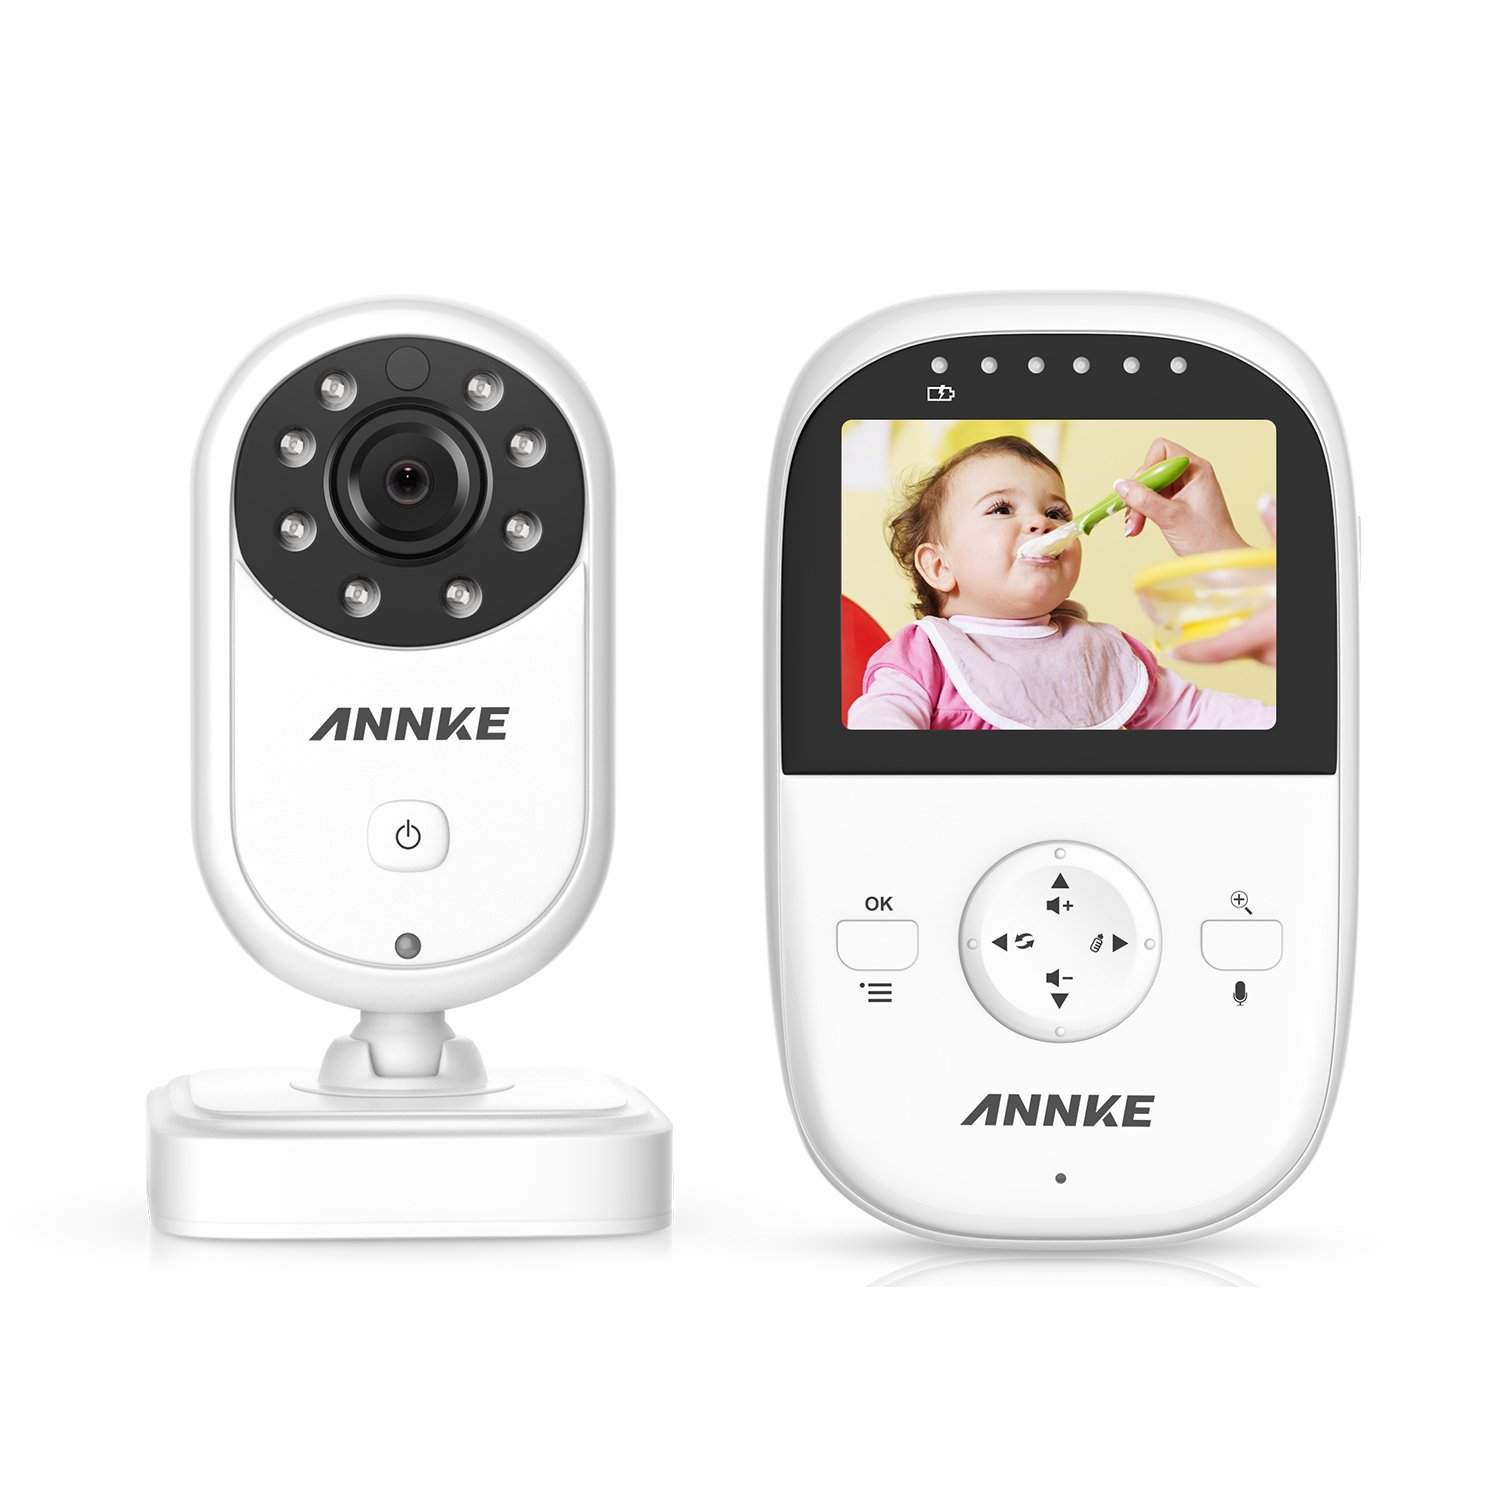 "Premium Wireless Baby Monitor By ANNKE - Built-In Camera & Clear Two-Way Audio - Night Vision Mode - 2.4GHz Encrypted WiFi Long Transmission Range - 2.4"" LCD Screen Controller Unit"